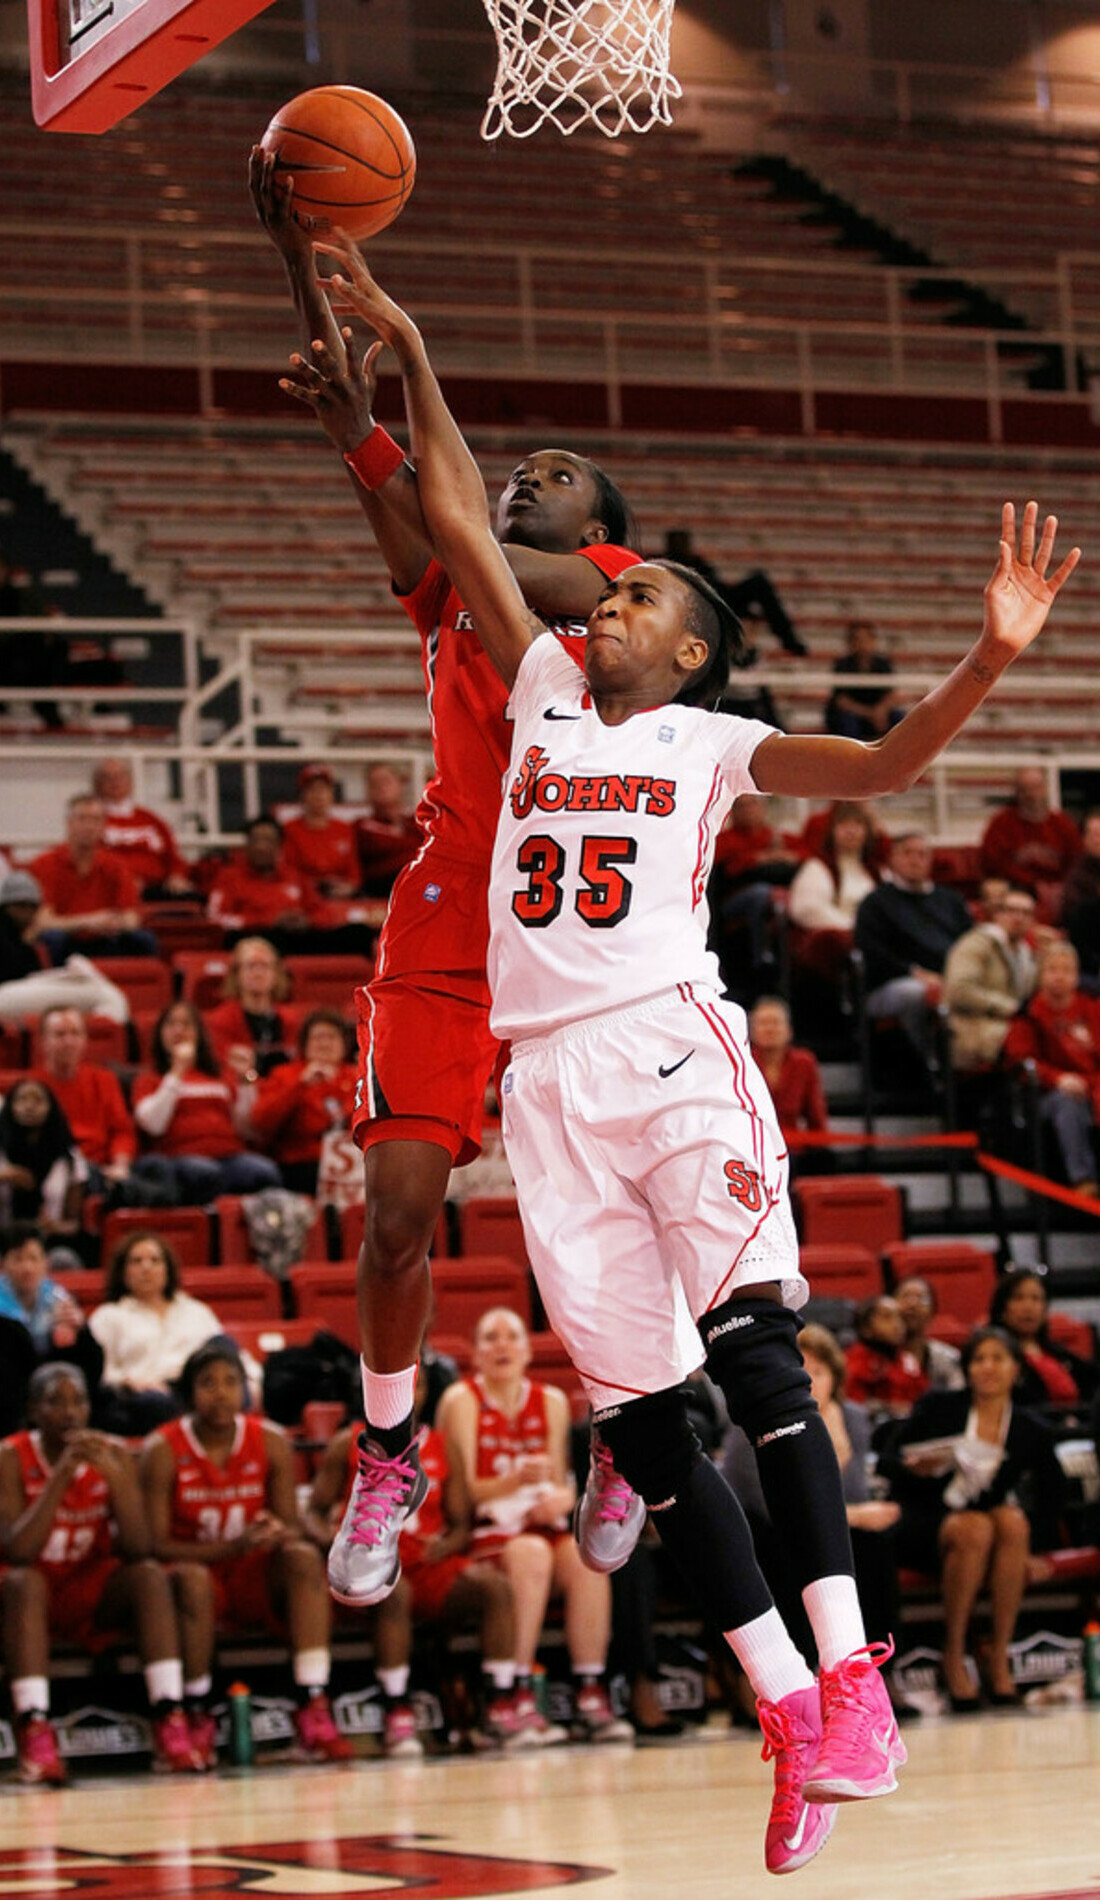 A St. Johns Red Storm Women's Basketball live event